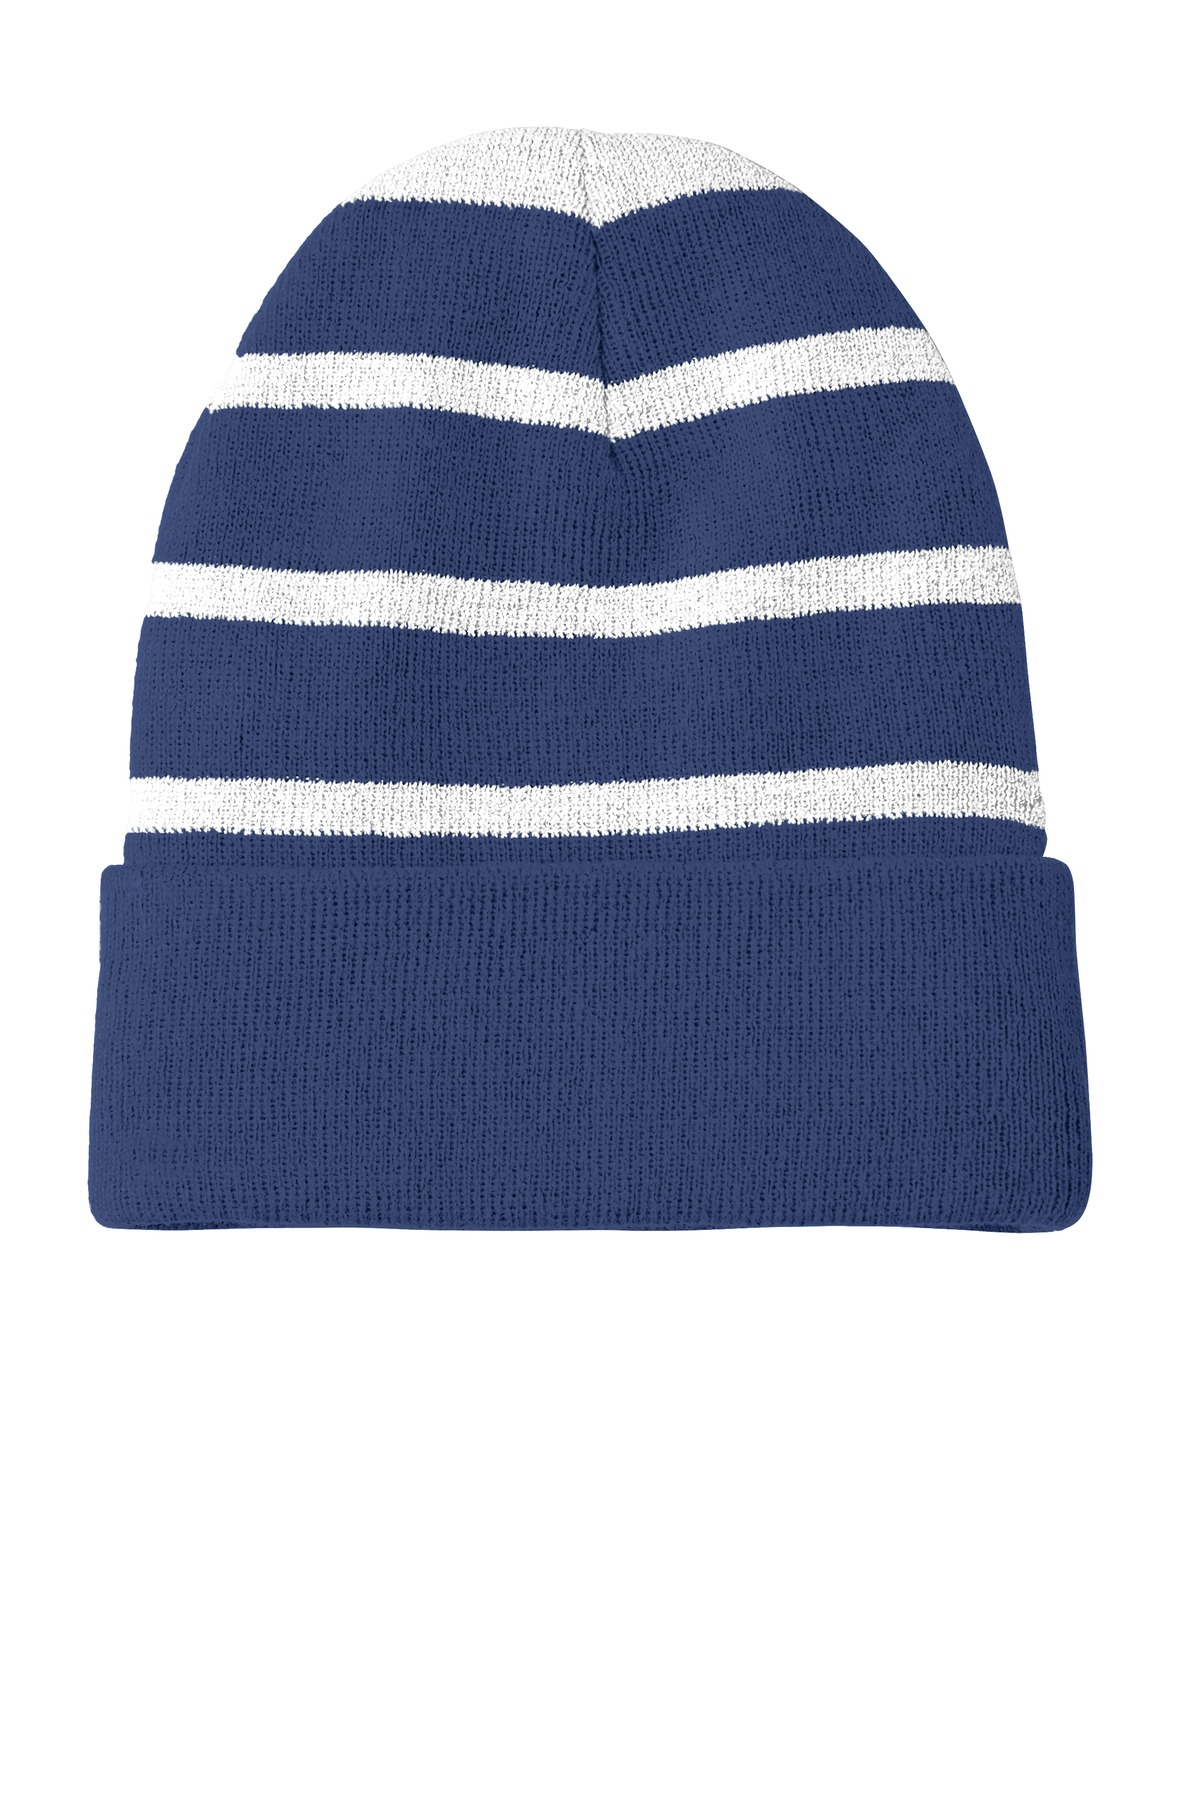 Sport-Tek ®  Striped Beanie with Solid Band. STC31 - Team Navy/ Silver